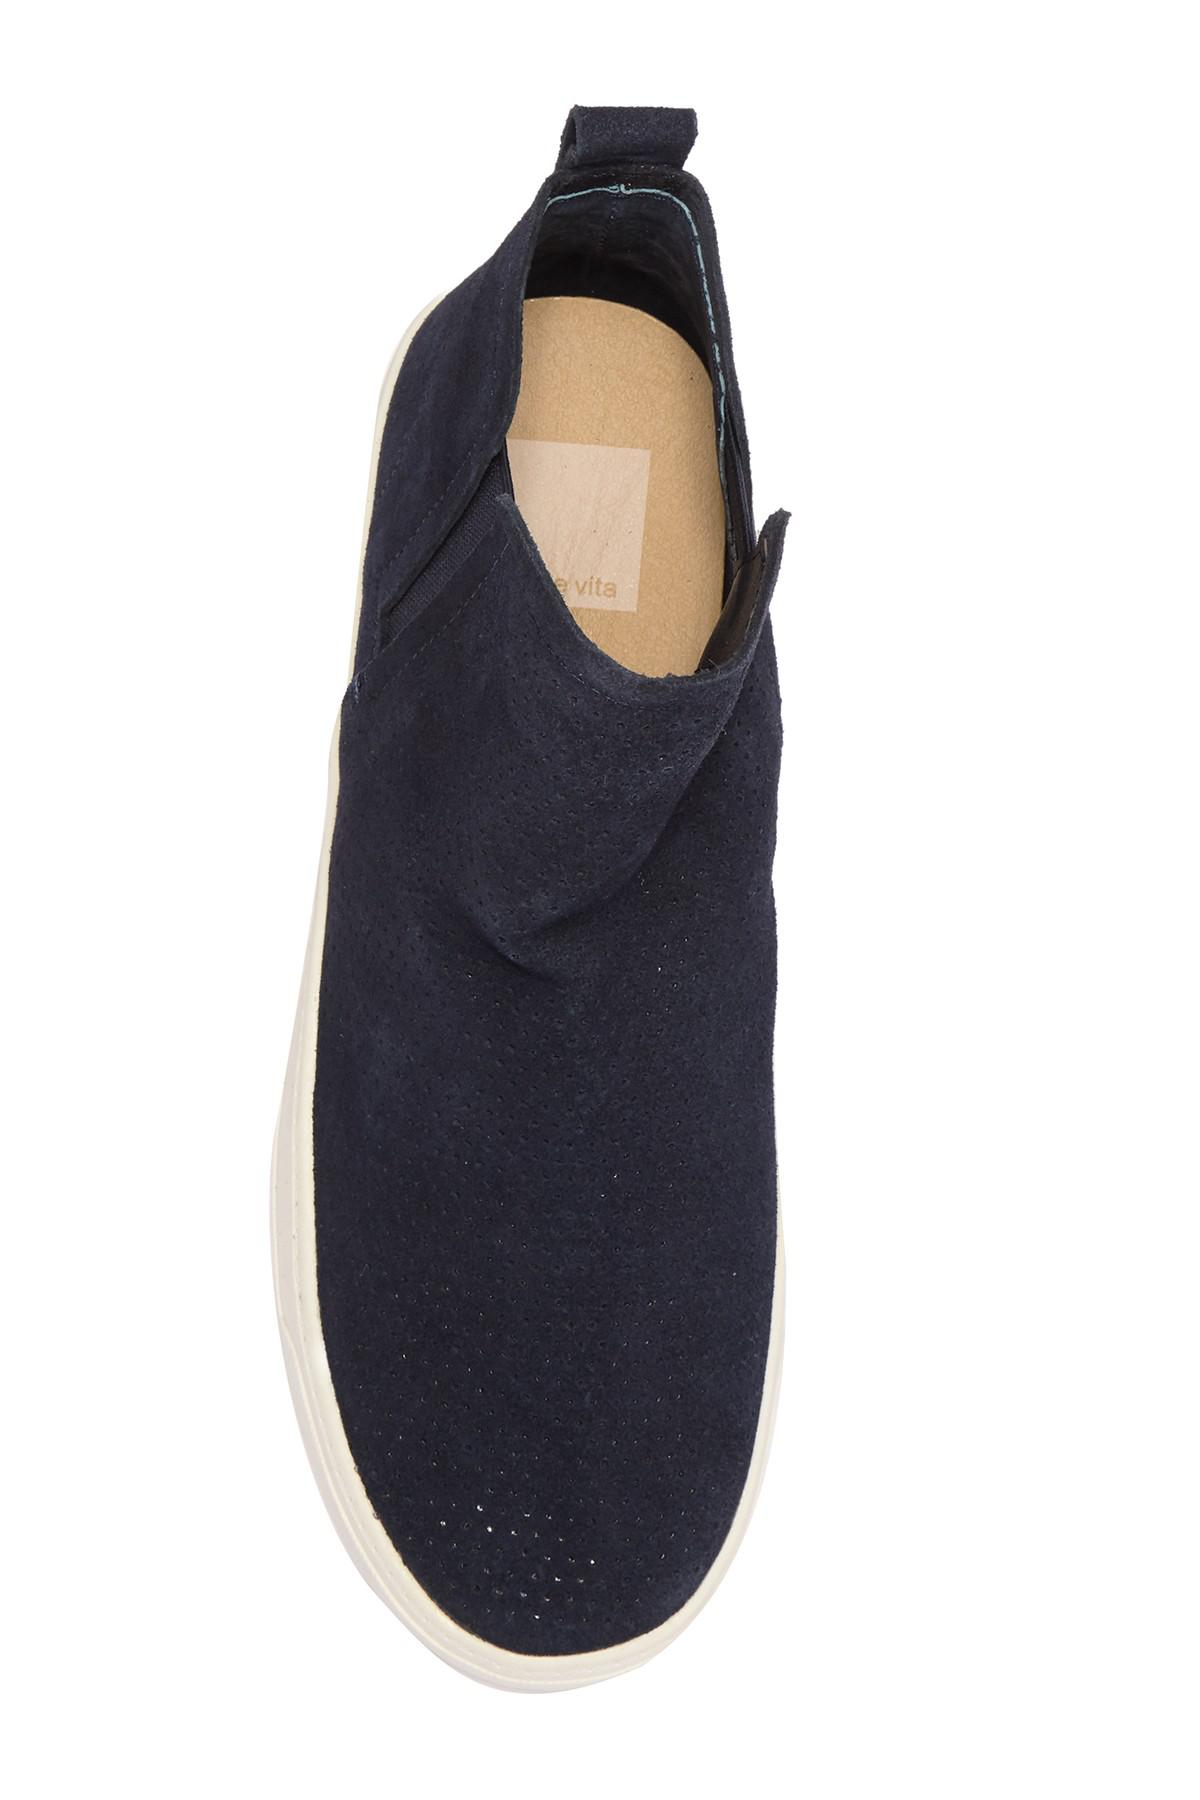 Dolce Vita Xane Perforated Suede